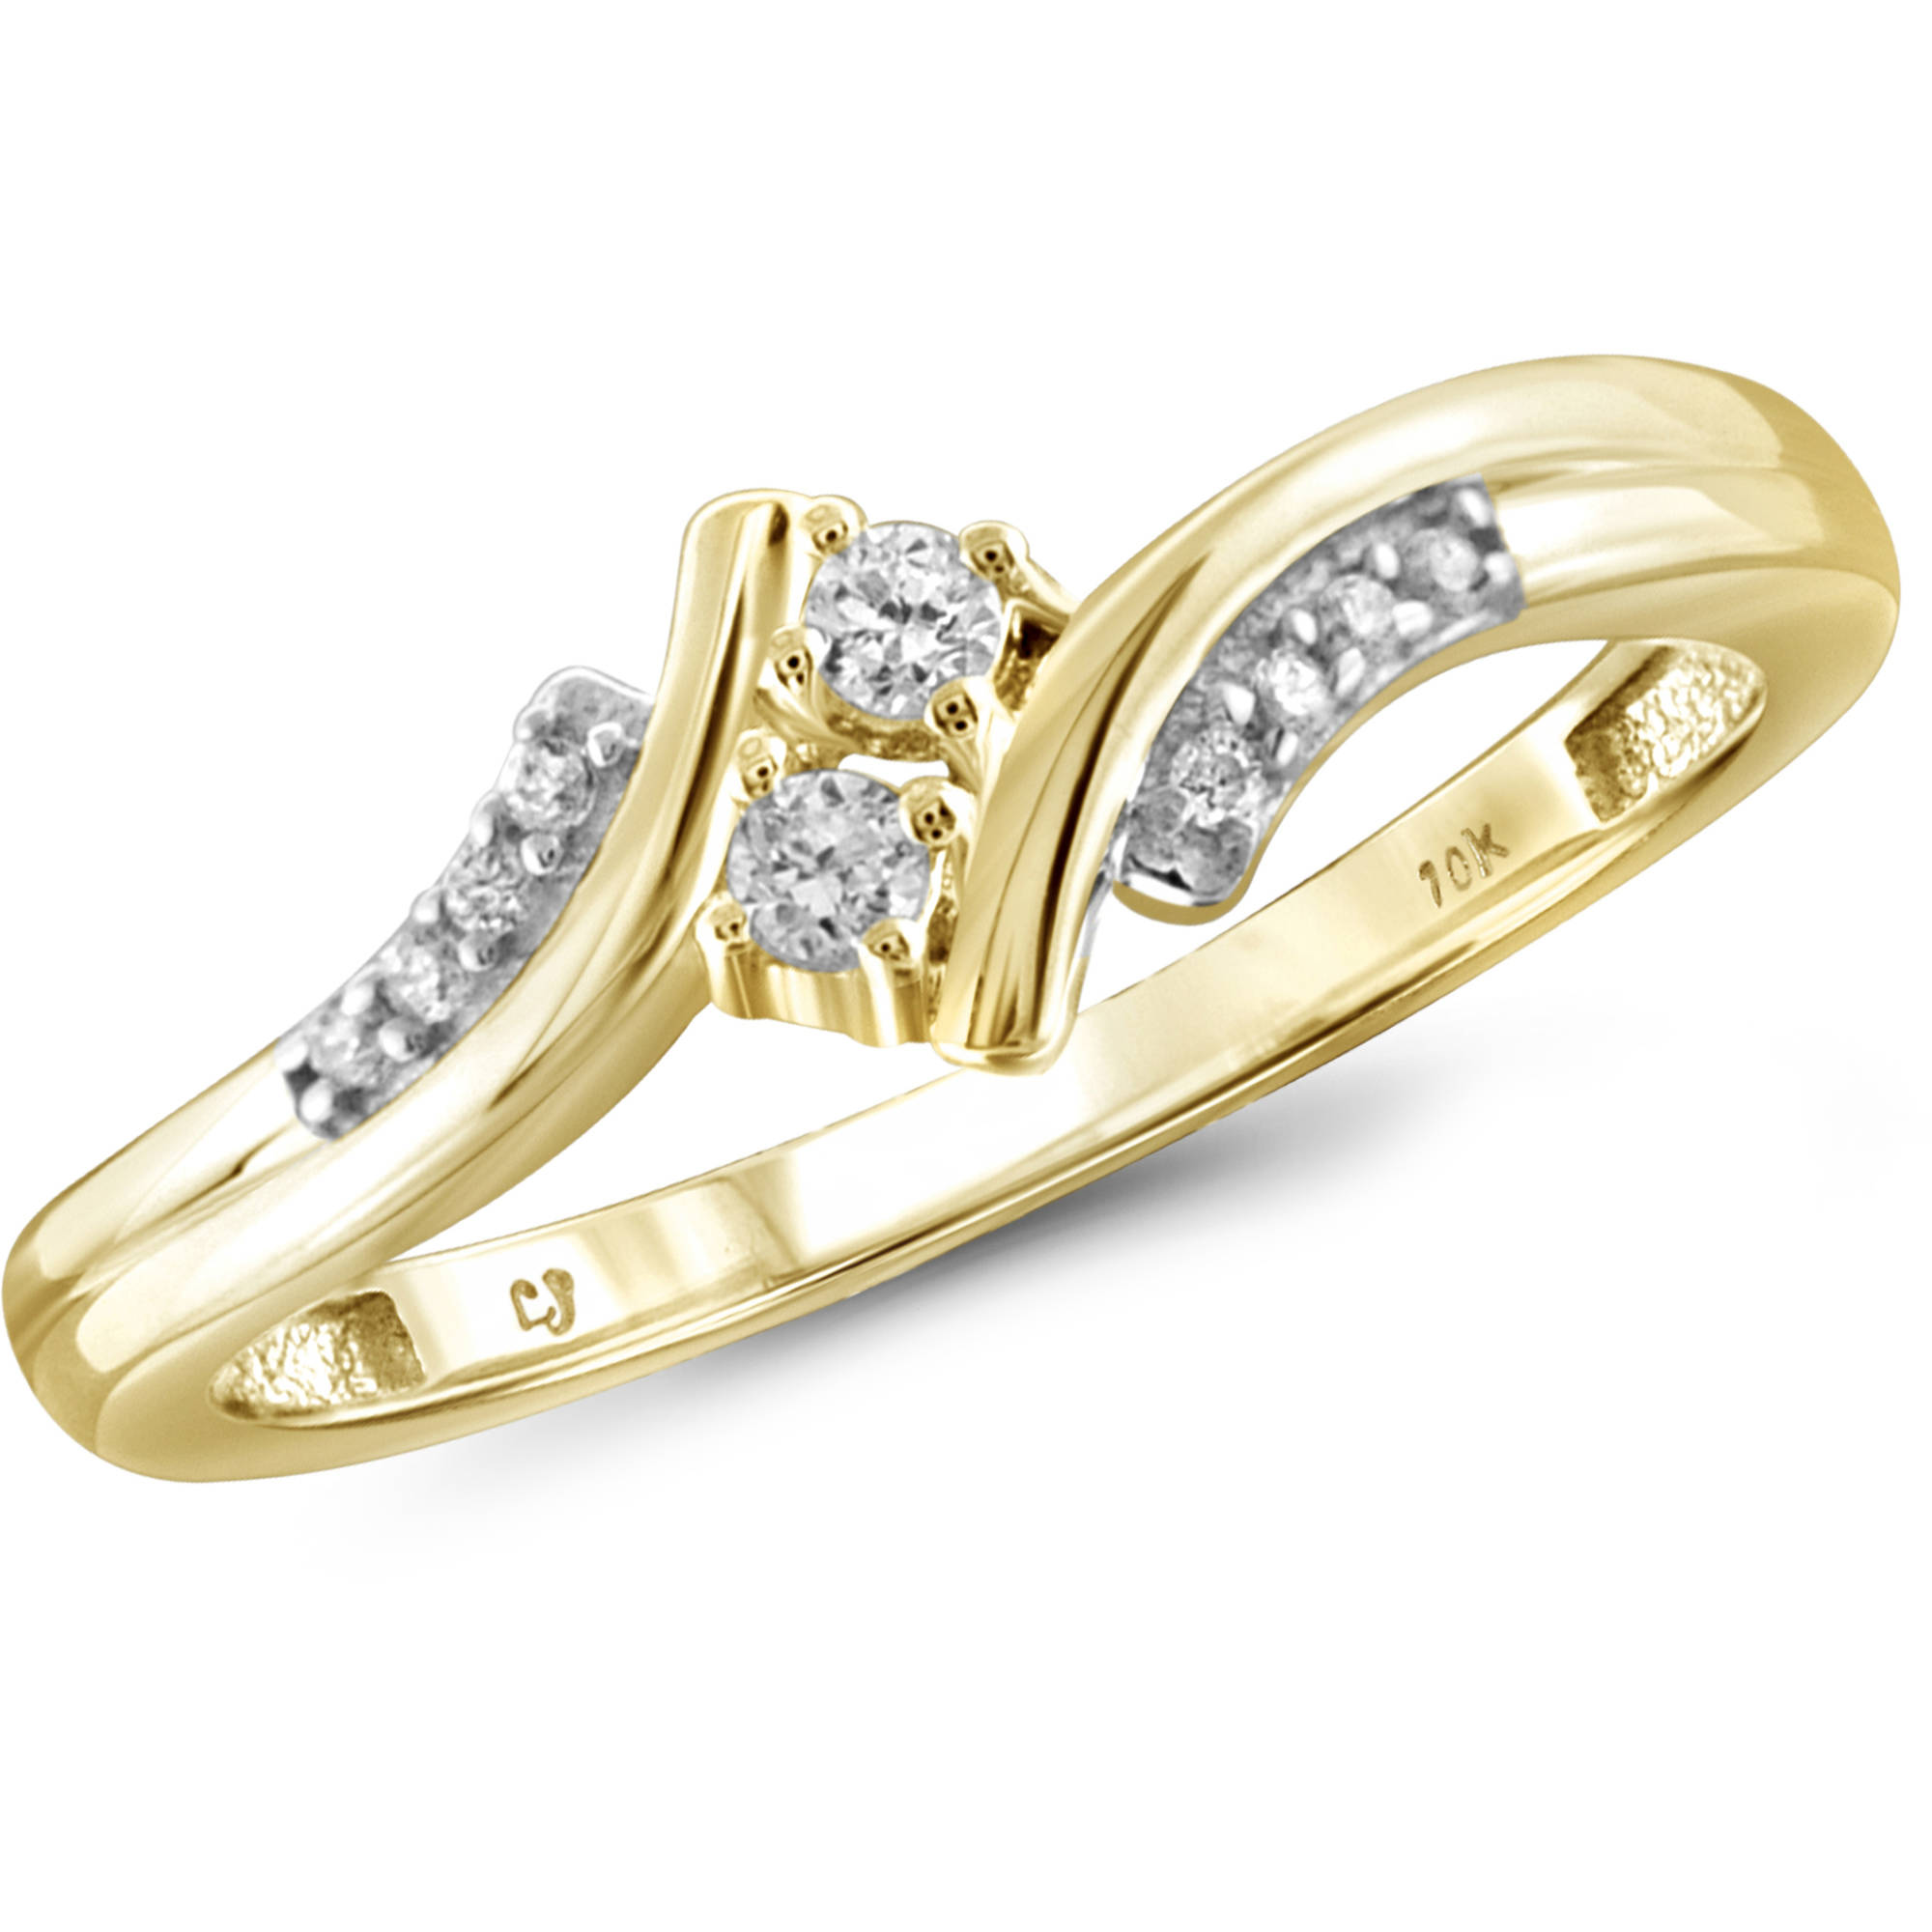 JewelersClub 1/10 Carat T.W. Round-Cut White Diamond 10kt Yellow Gold Two-Stone Ring